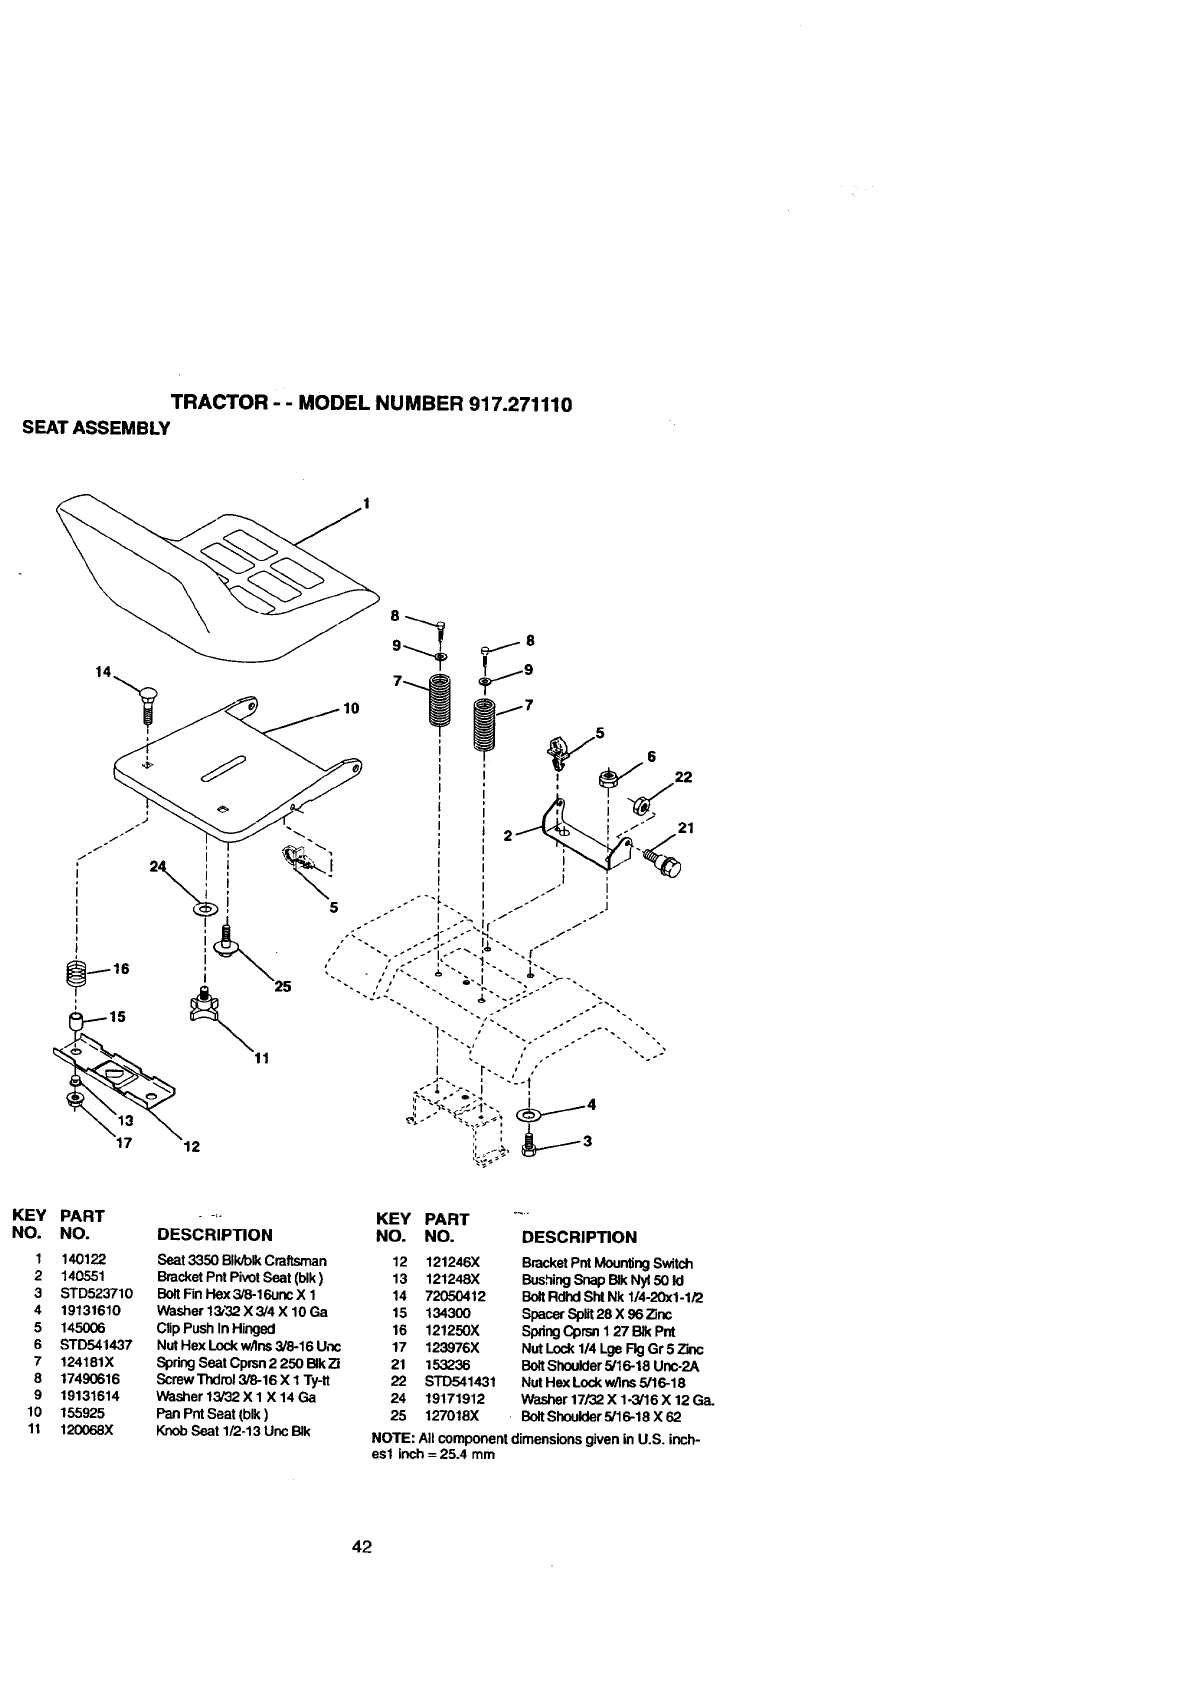 Page 42 of Craftsman Lawn Mower 917.271110 User Guide